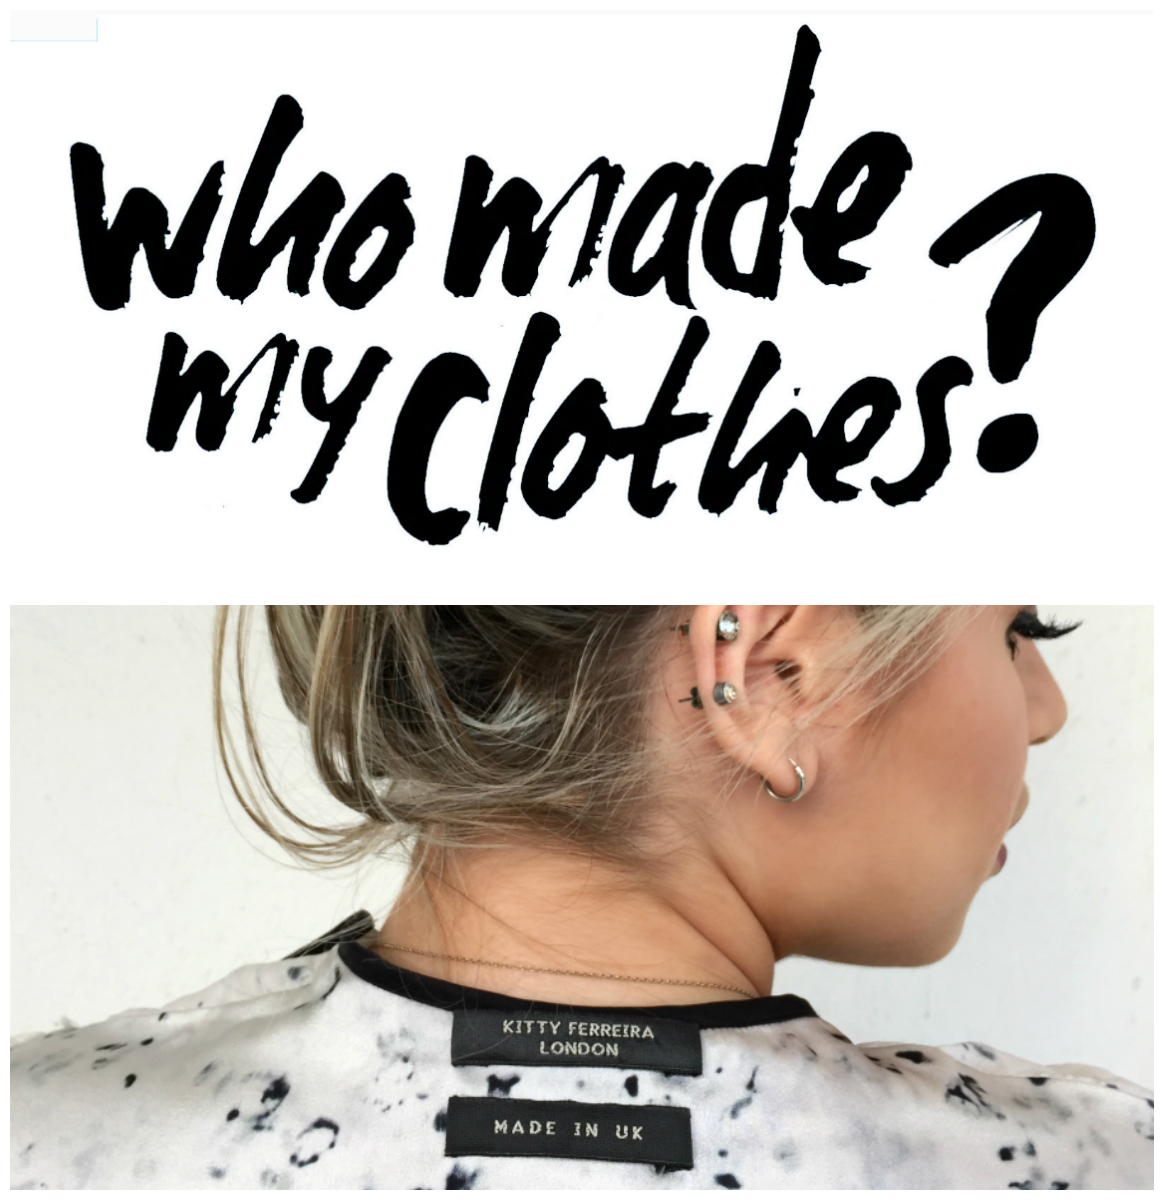 #whomademyclothes #fashionrevolution #fashrev